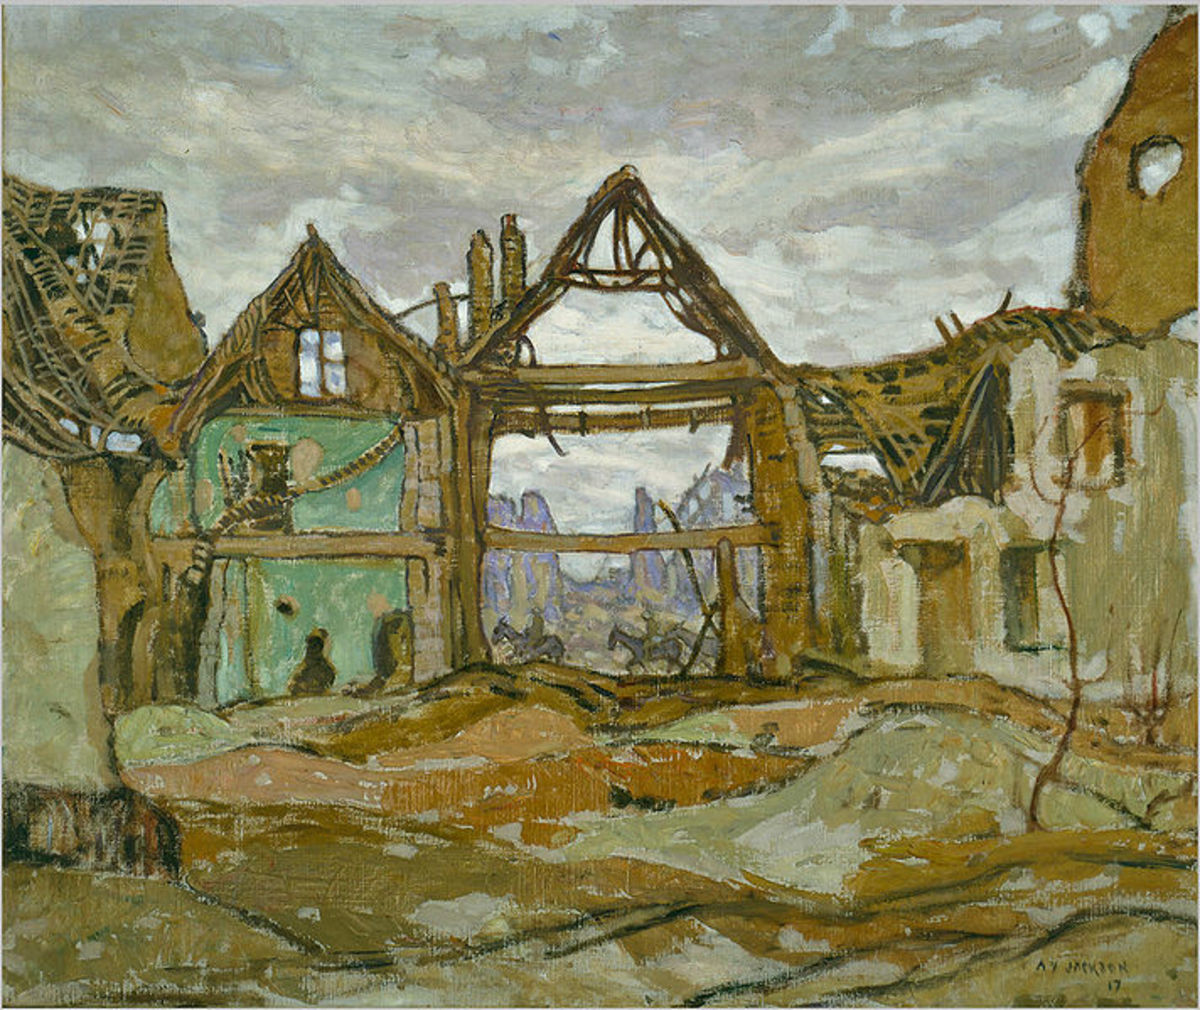 House of Ypres by A. Y. Jackson, 1917. Image courtesy of Wiki Commons